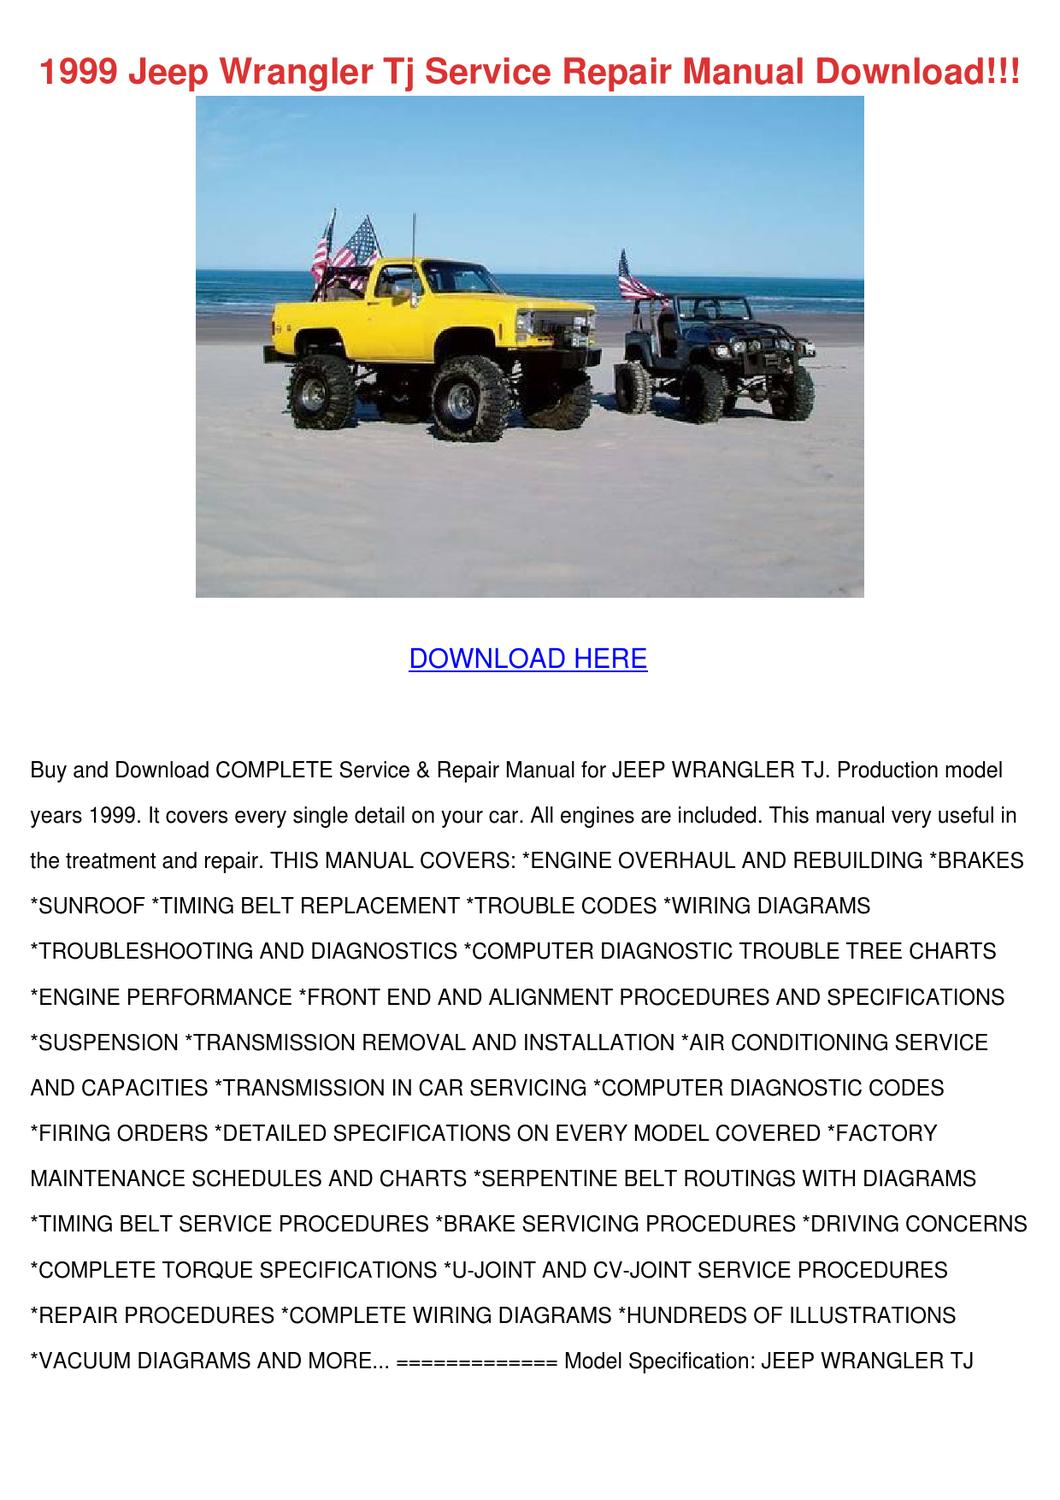 Jeep Wrangler Tj Factory Service Manual 2002 by ...